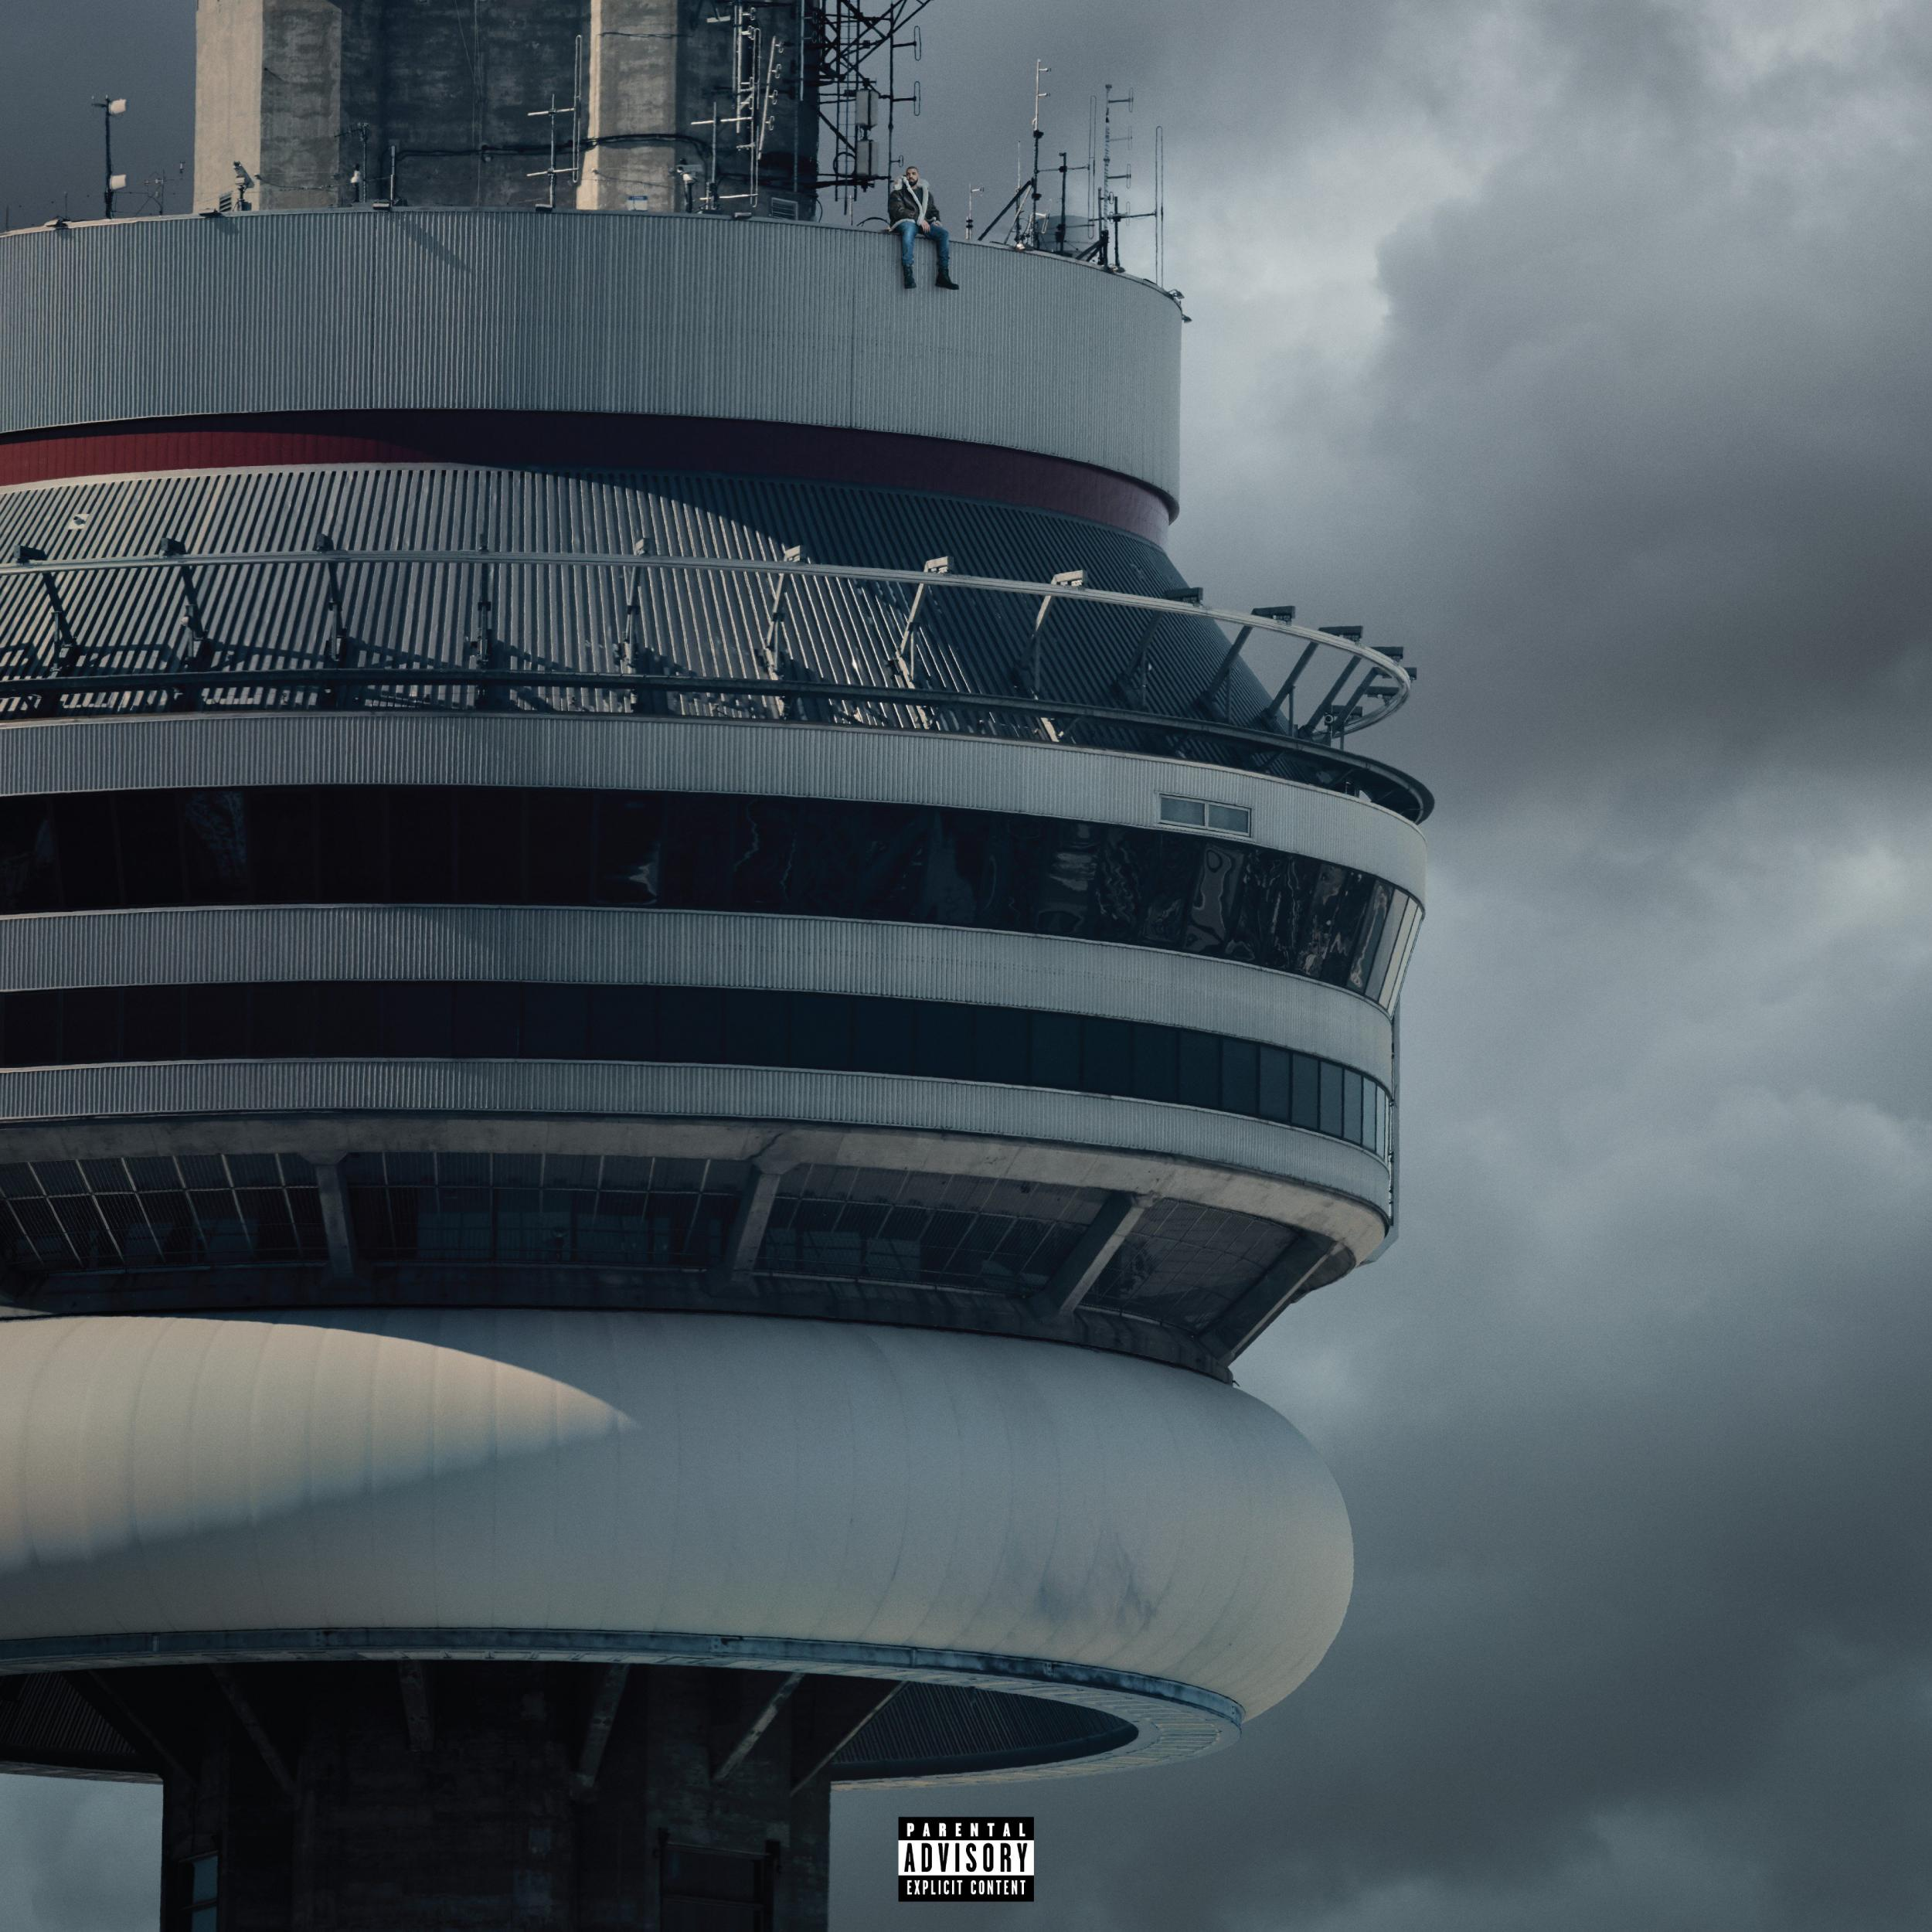 drake-views-album-cover.jpg